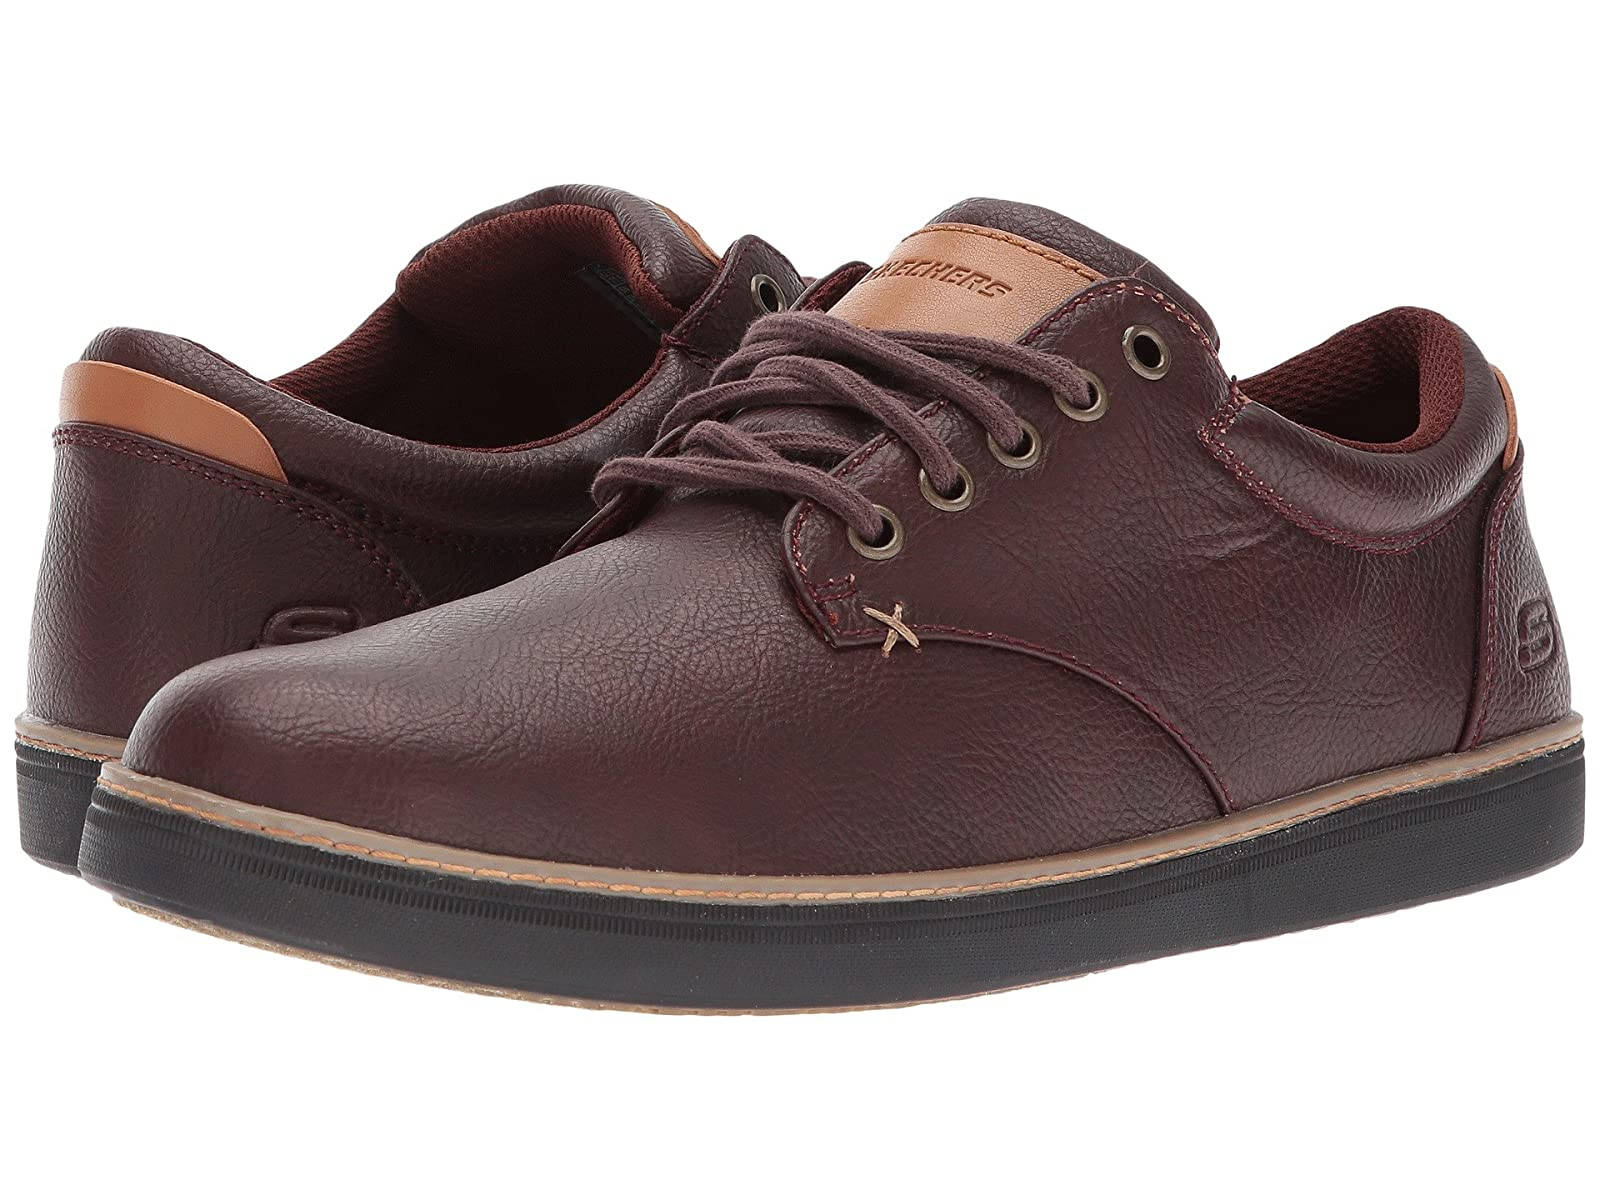 SKECHERS Helmer - StevenCheap and distinctive eye-catching shoes